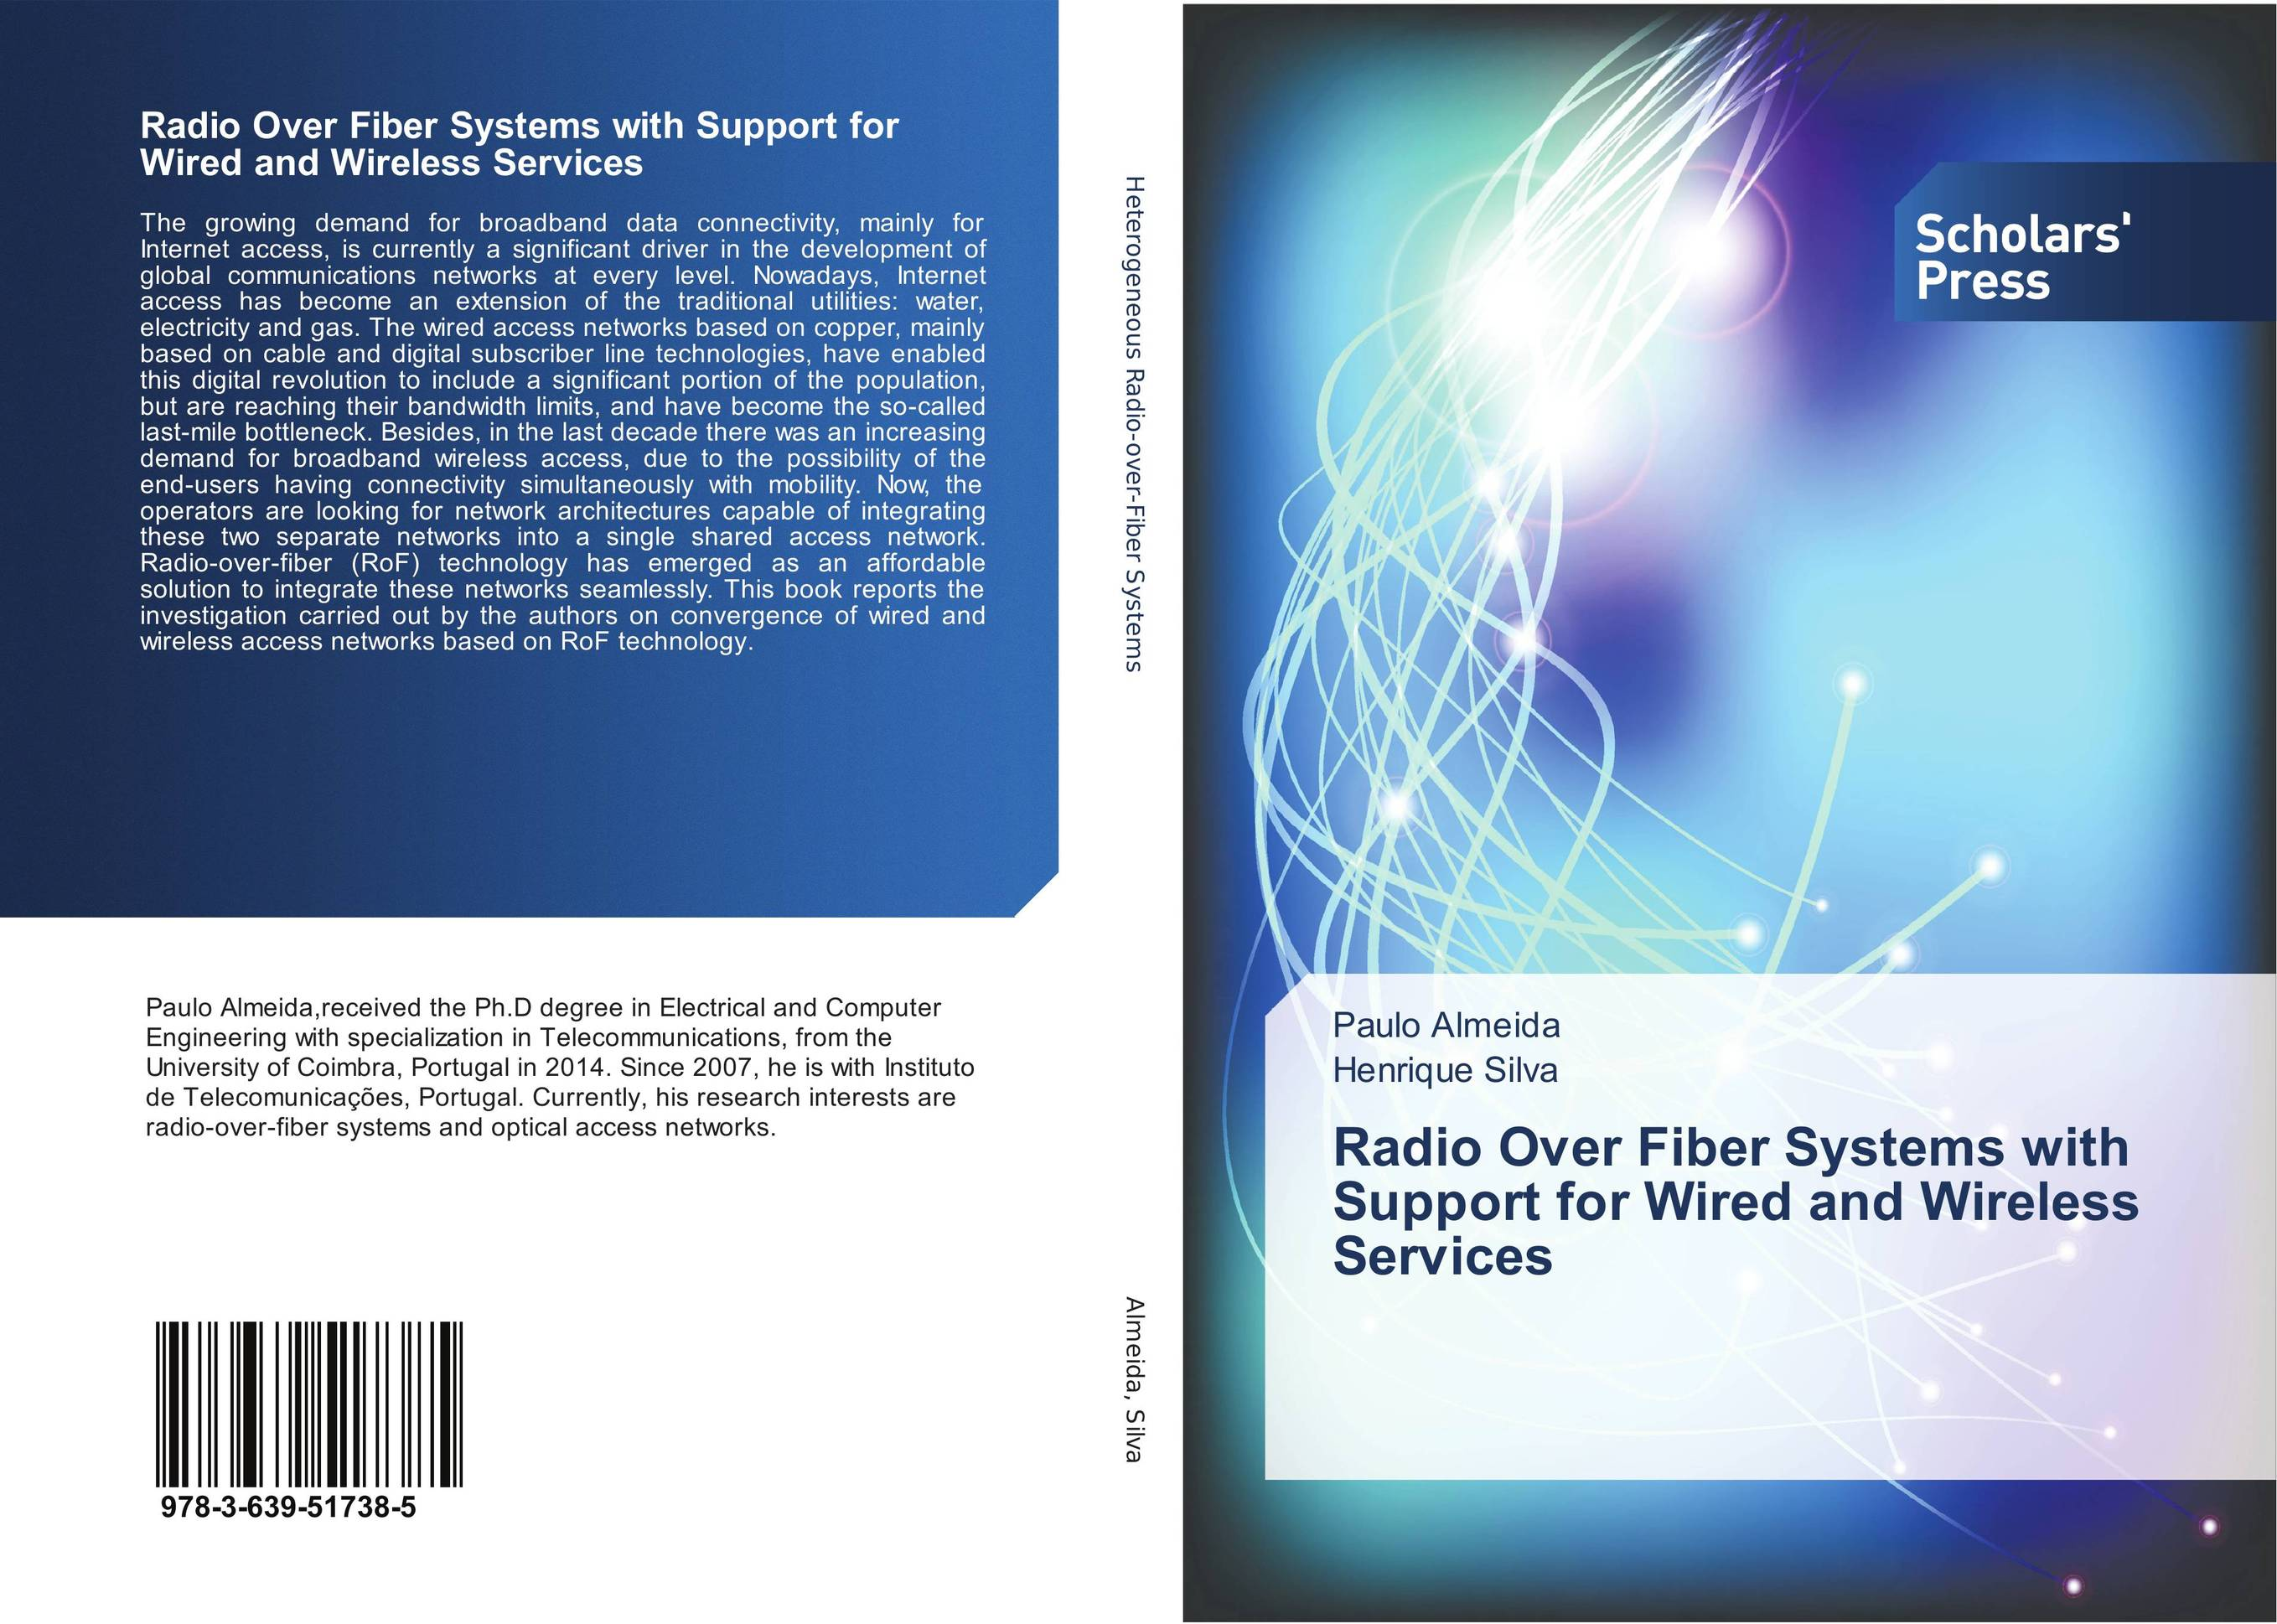 Radio Over Fiber Systems with Support for Wired and Wireless Services